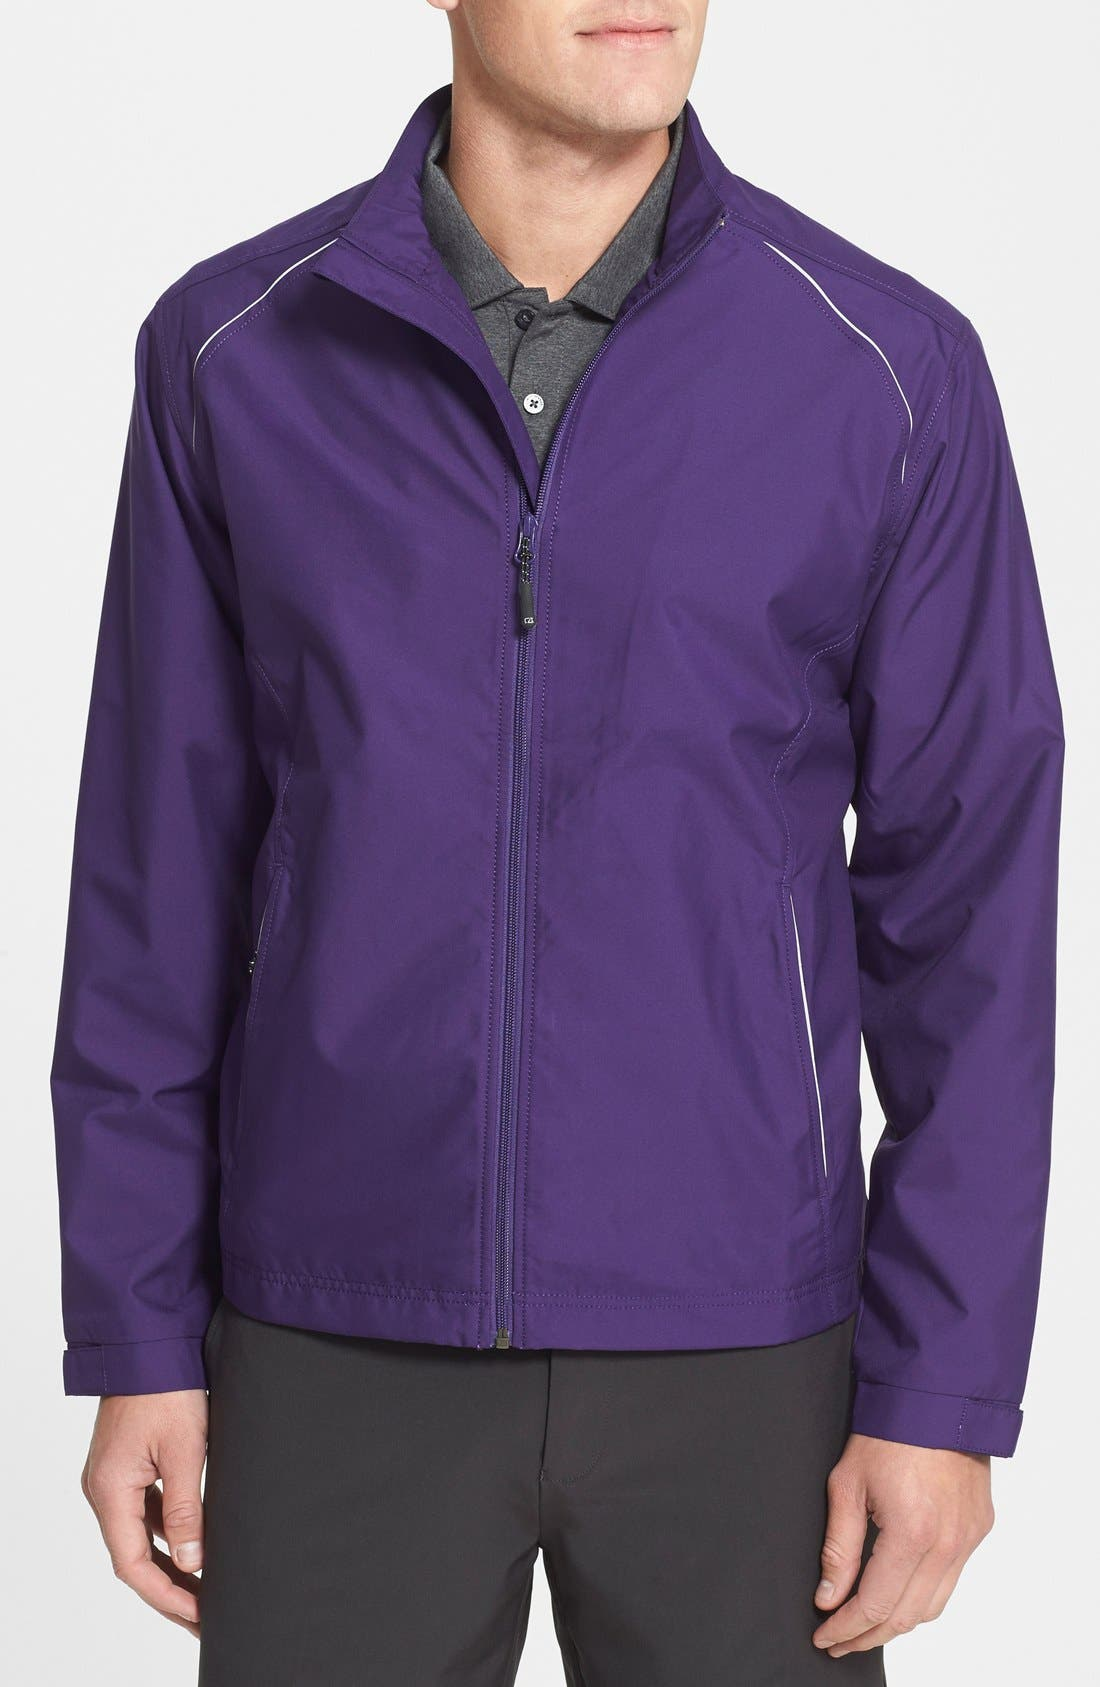 Cutter & Buck 'WeatherTec Beacon' Water Resistant Jacket (Big & Tall)